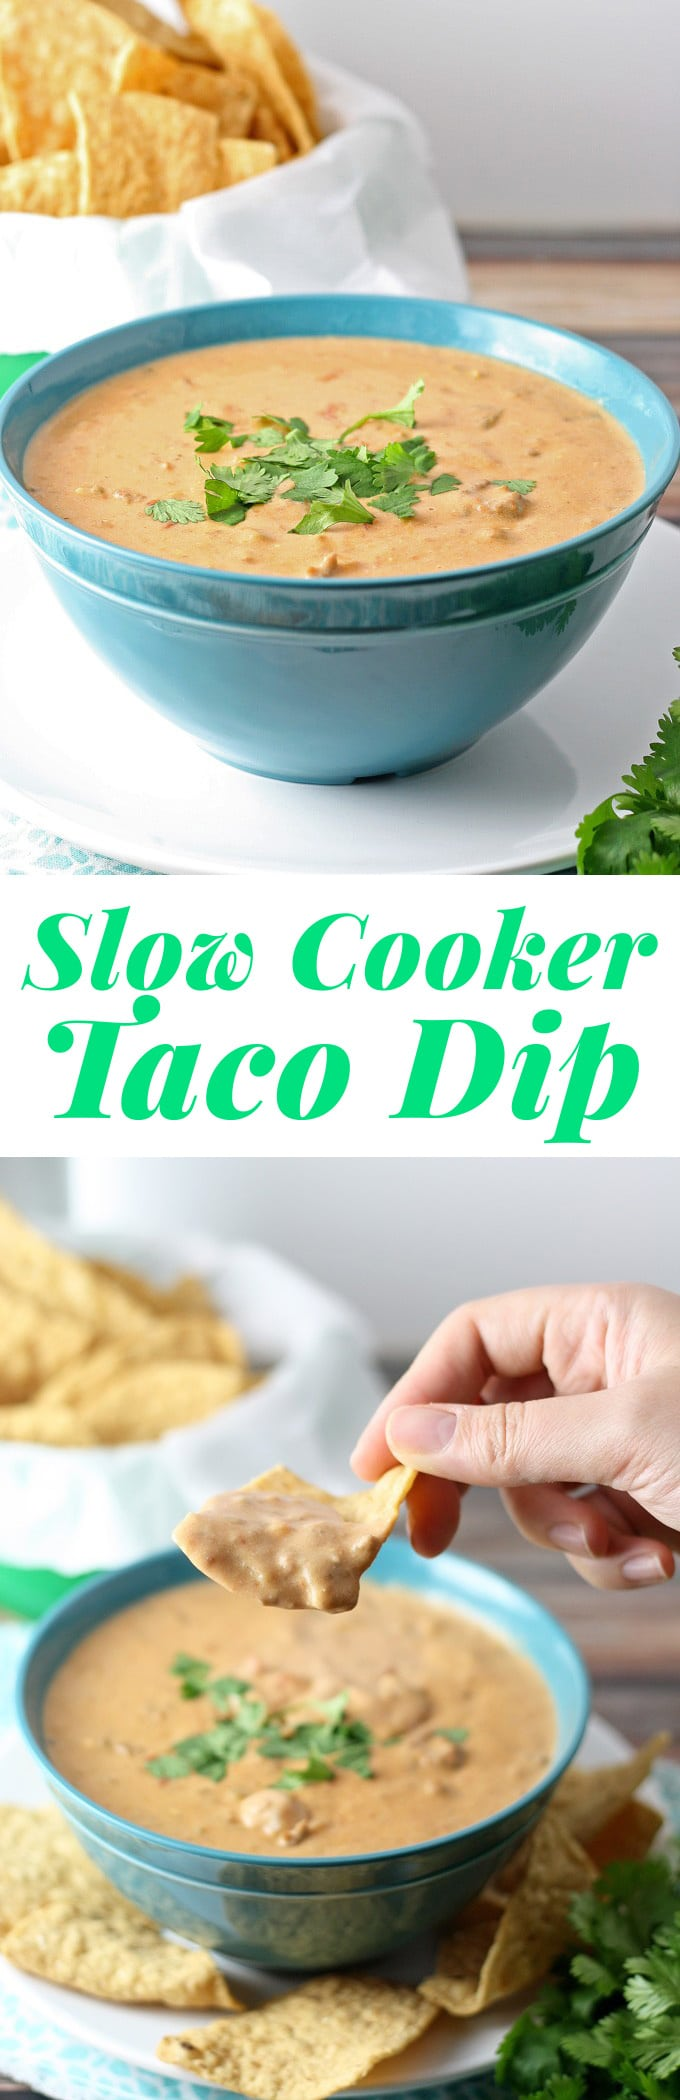 It's time to start thinking about football and tailgating! This recipe for slow cooker taco dip would be perfect for fall. | honeyandbirch.com